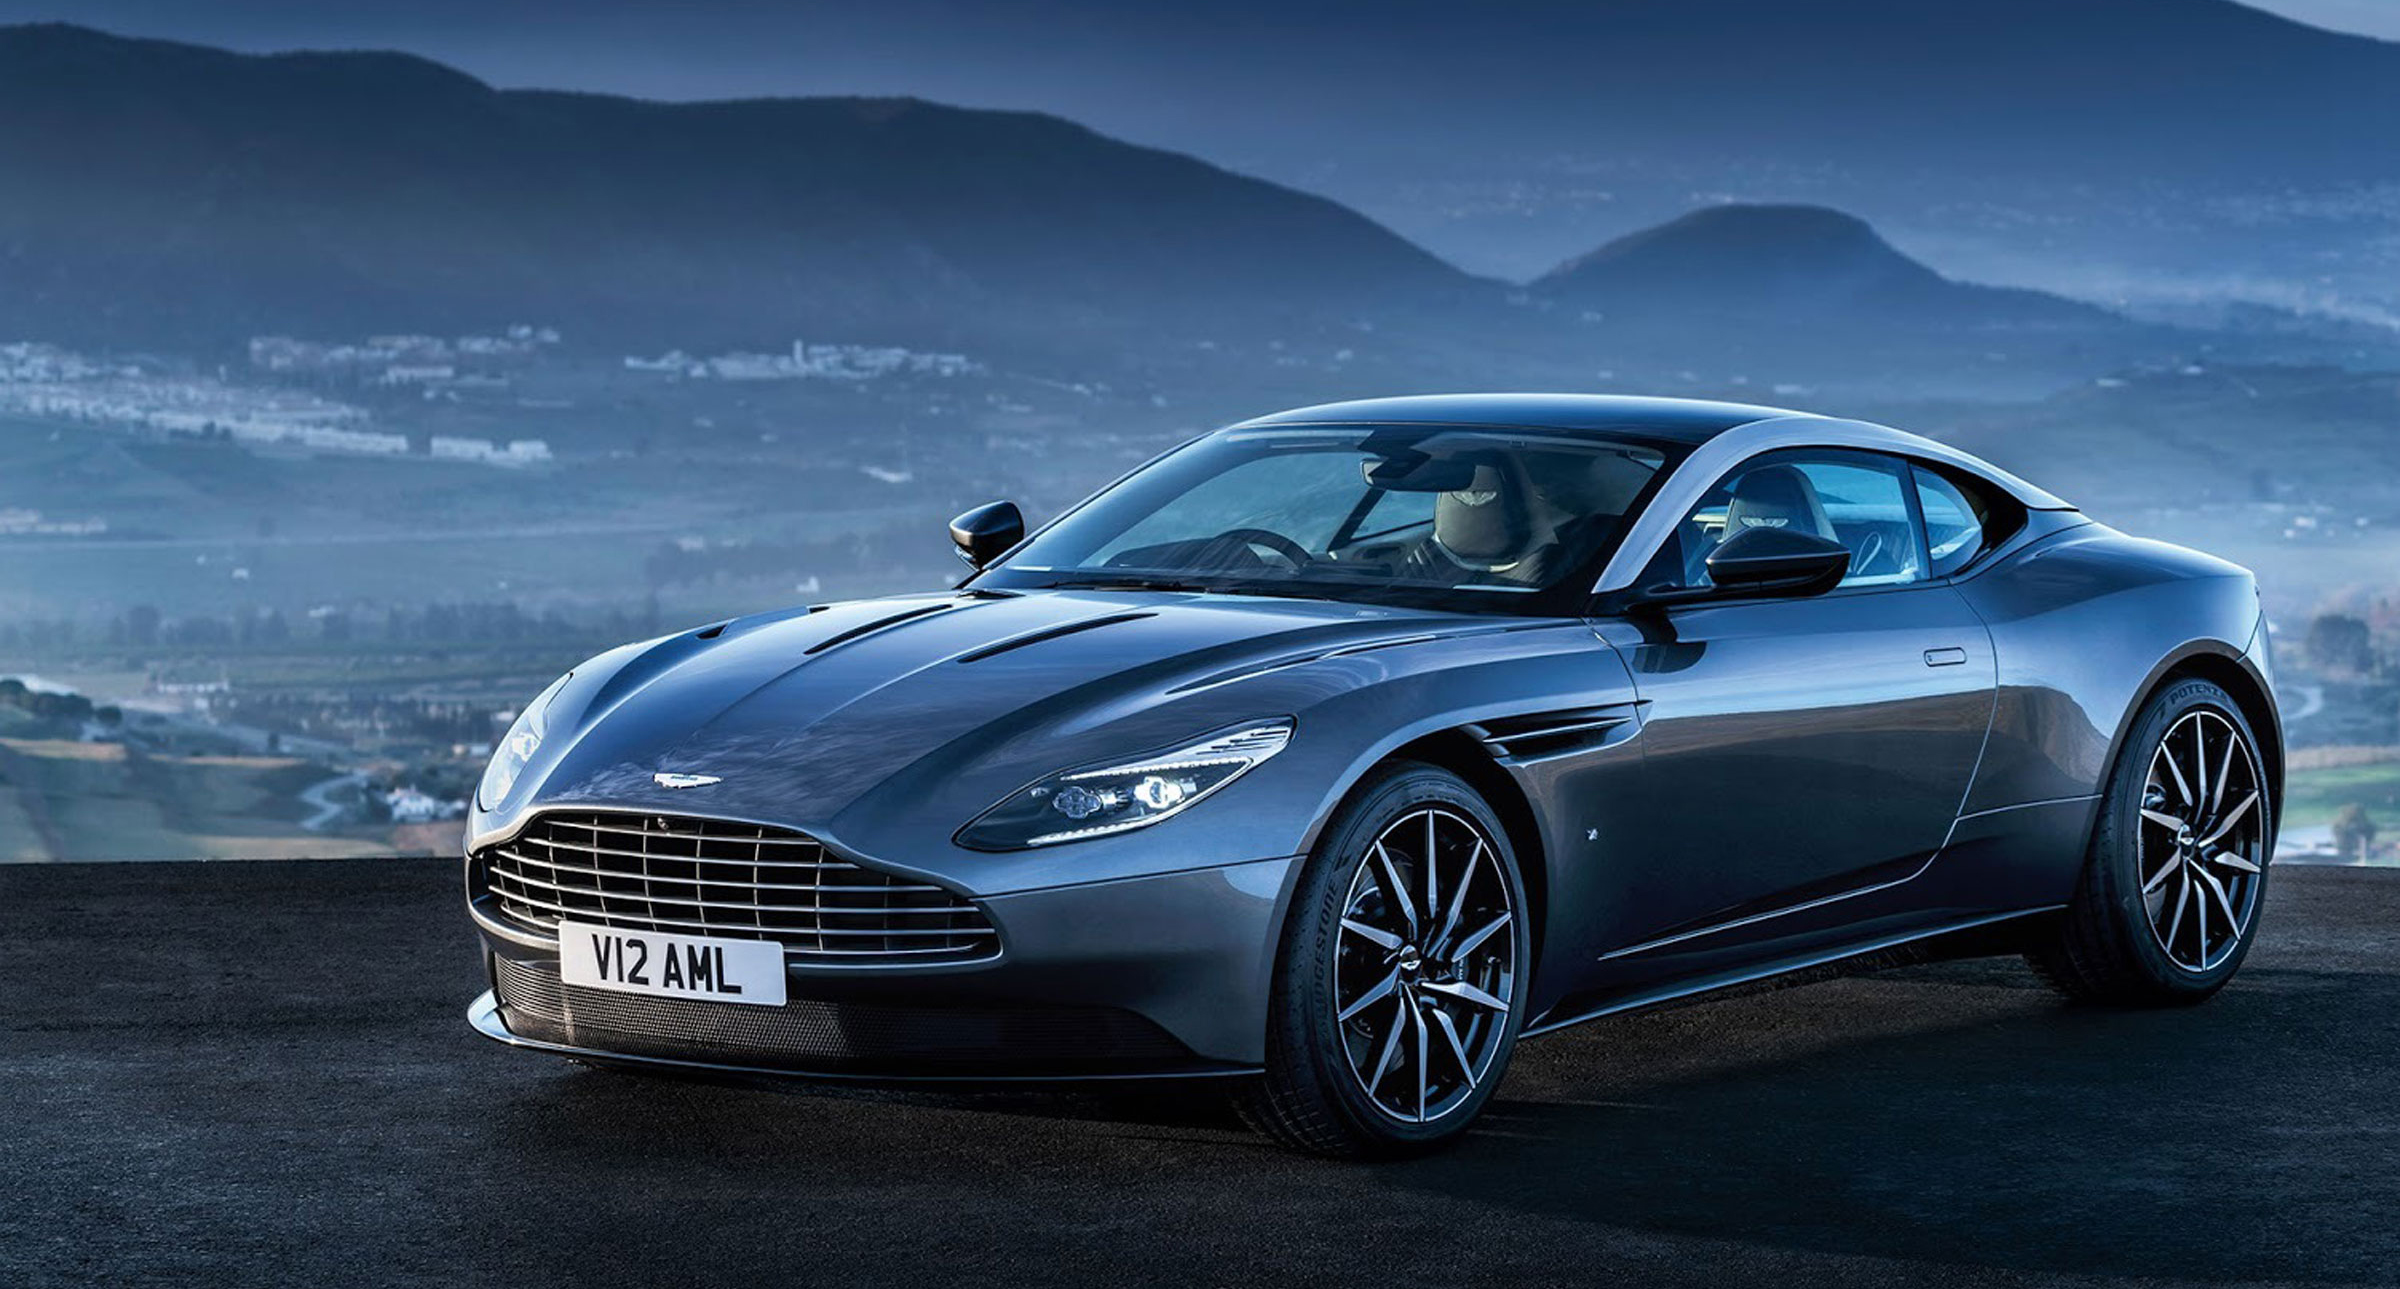 11 Things You Need To Know About The Aston Martin Db11 The Gentleman S Journal